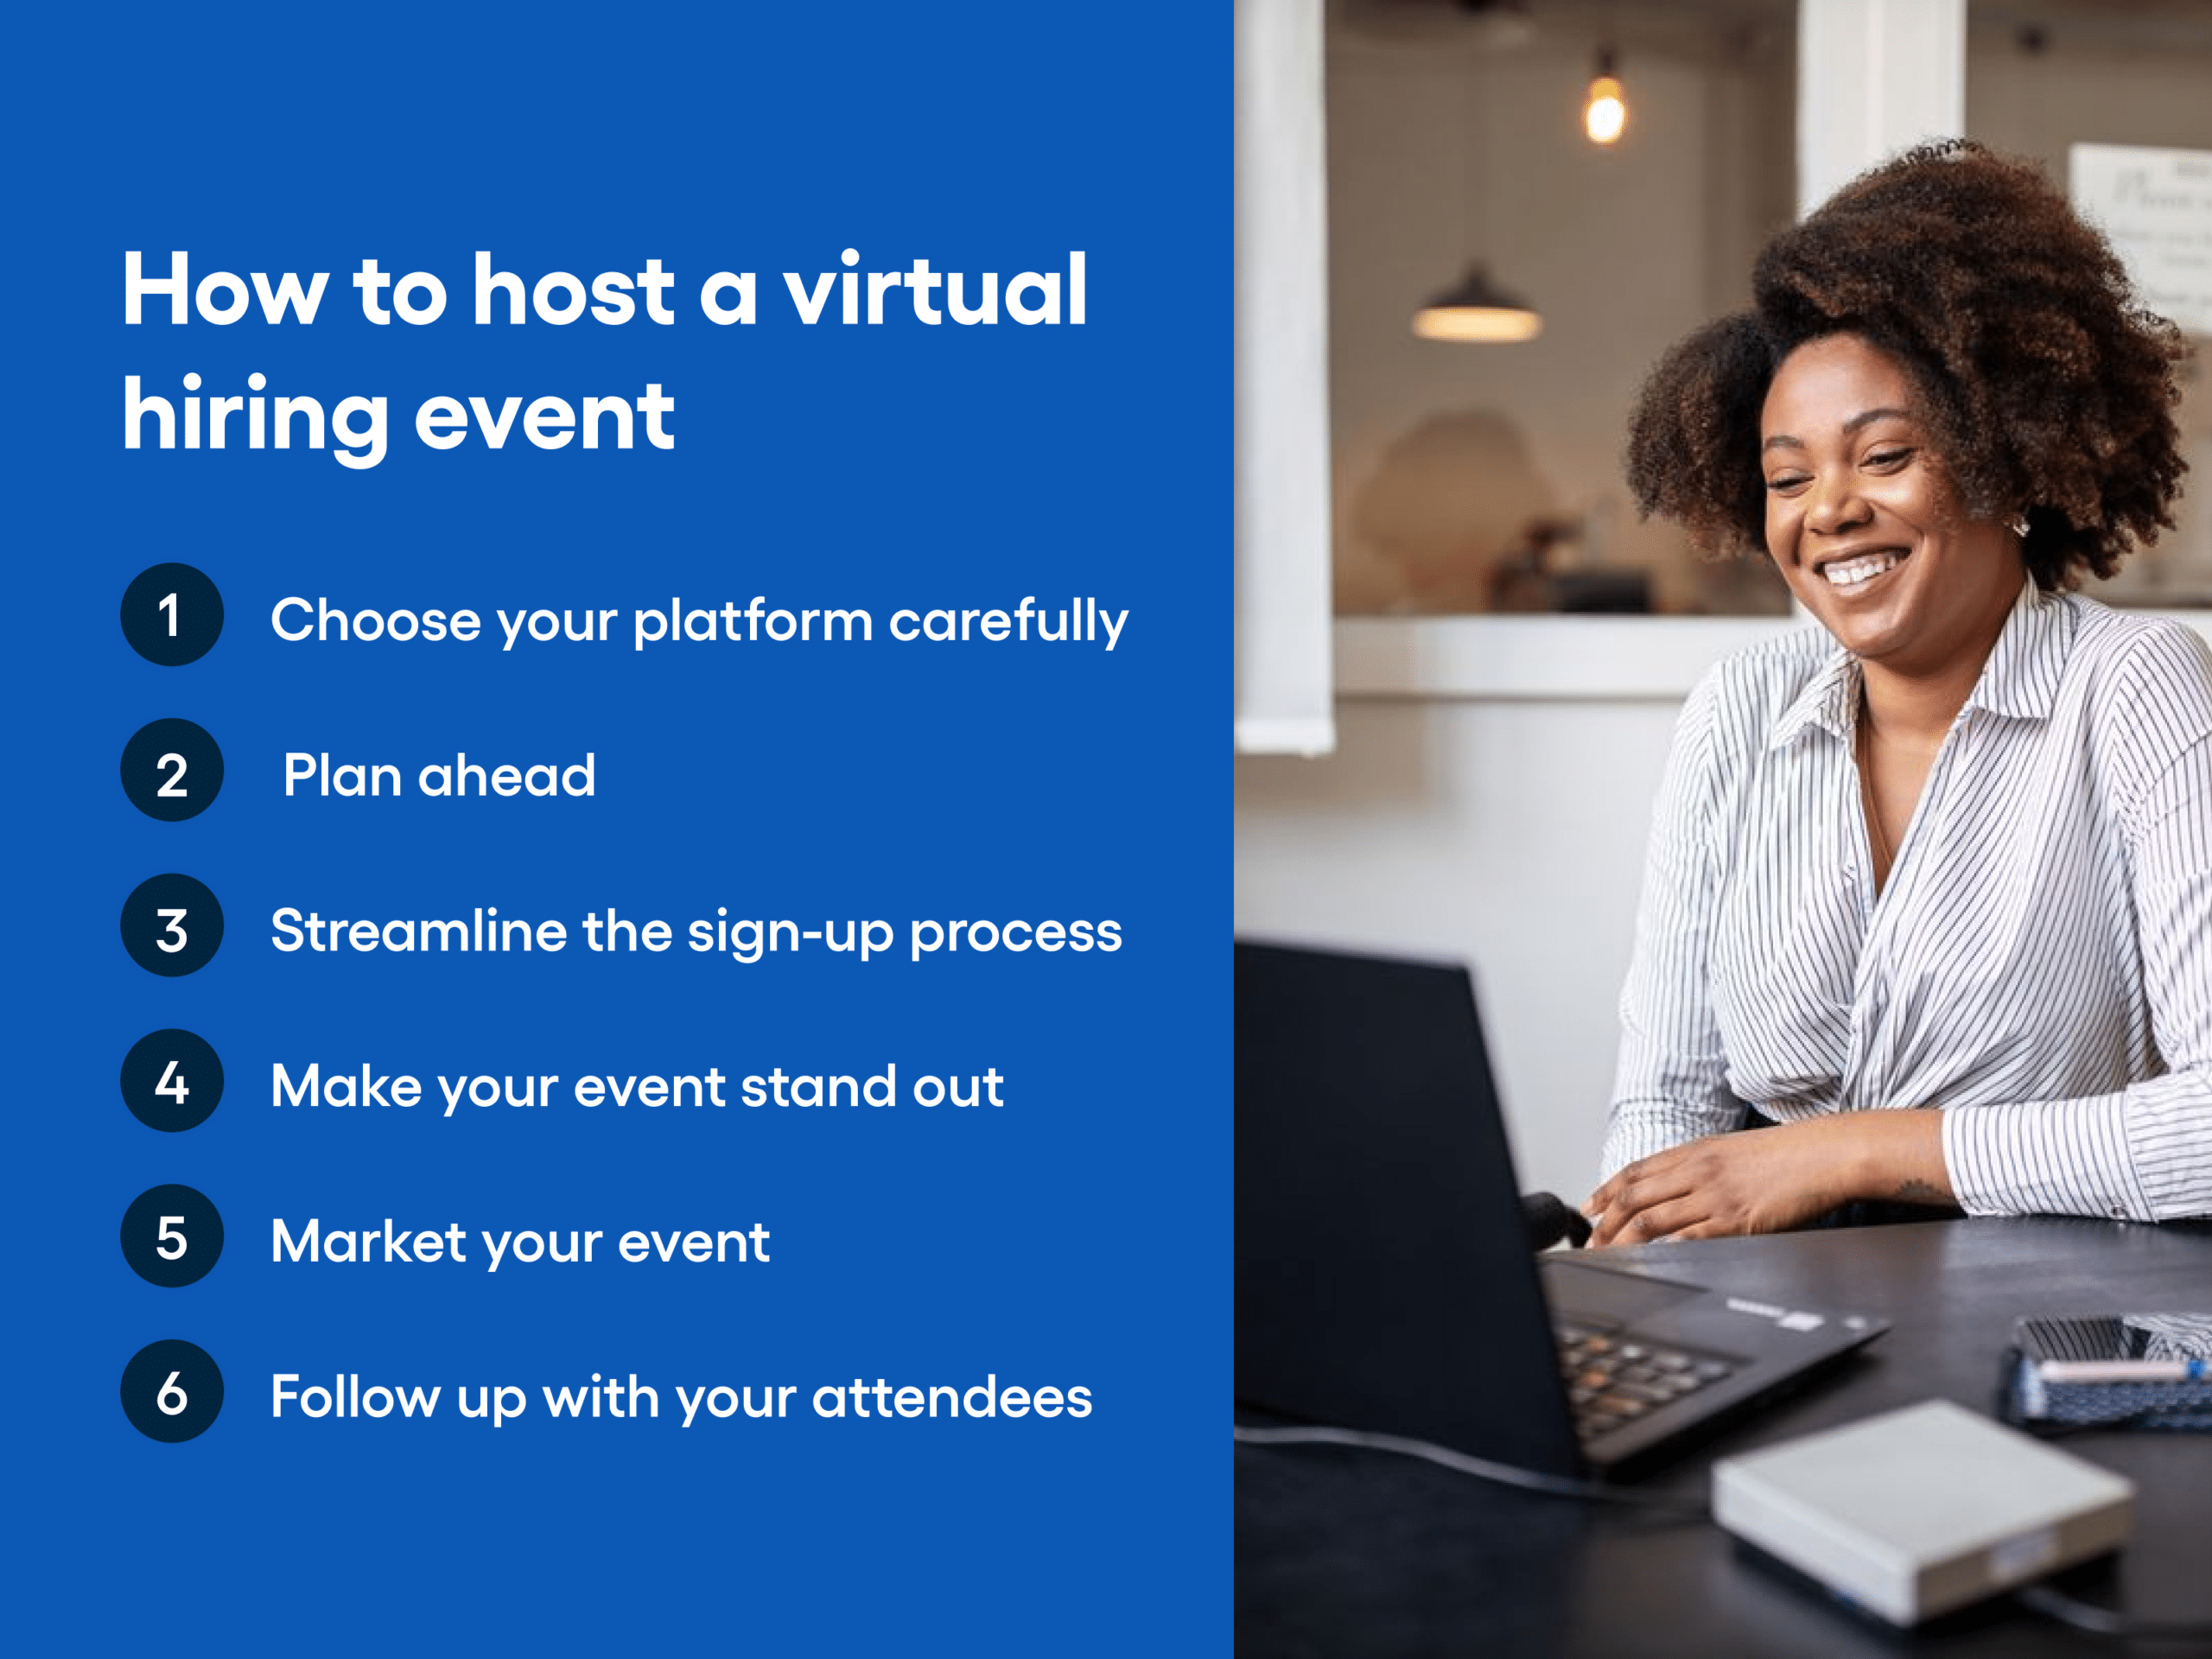 6 tips for great virtual hiring events 1